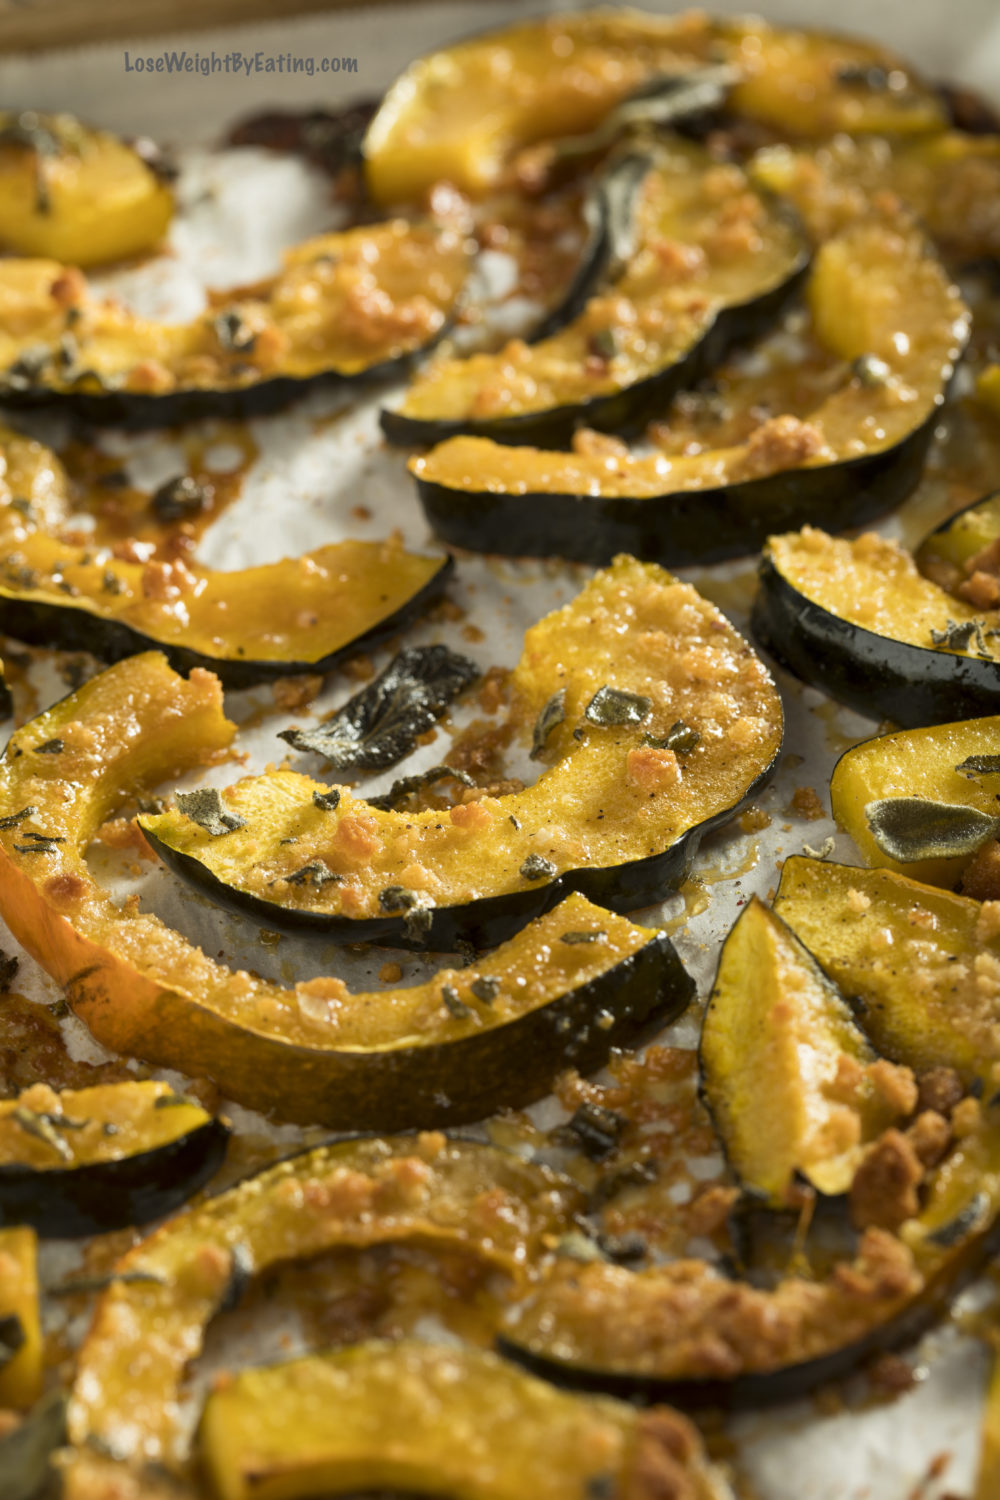 Easy Recipe for Acorn Squash in the Oven